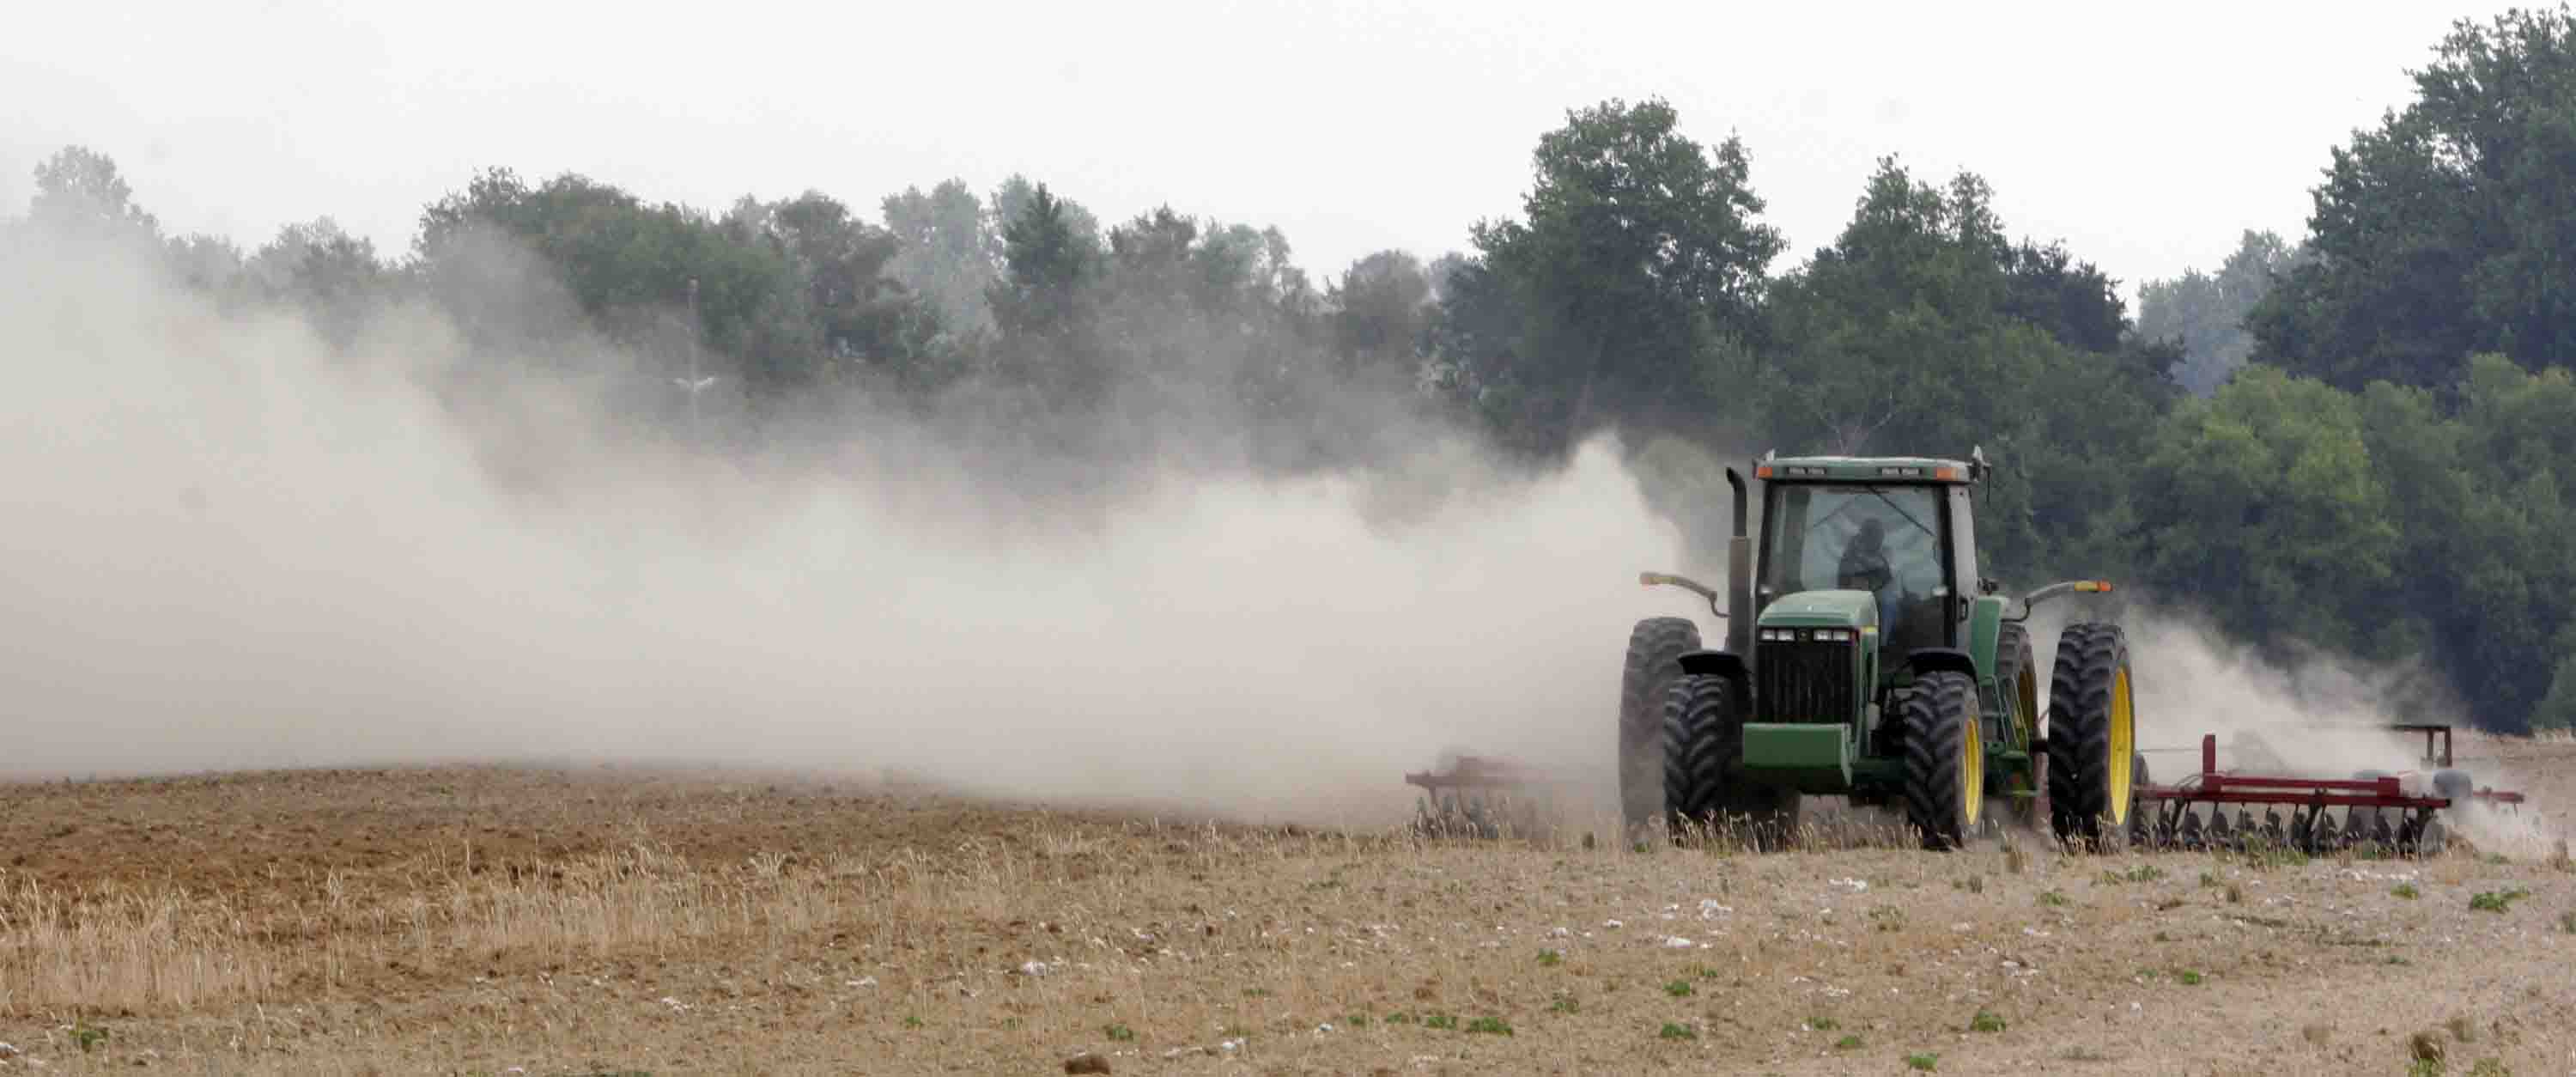 "Rep. Stephen Fincher is asking audiences to imagine a world where the EPA tries to enforce strict regulations on ""farm dust"" in rural areas."